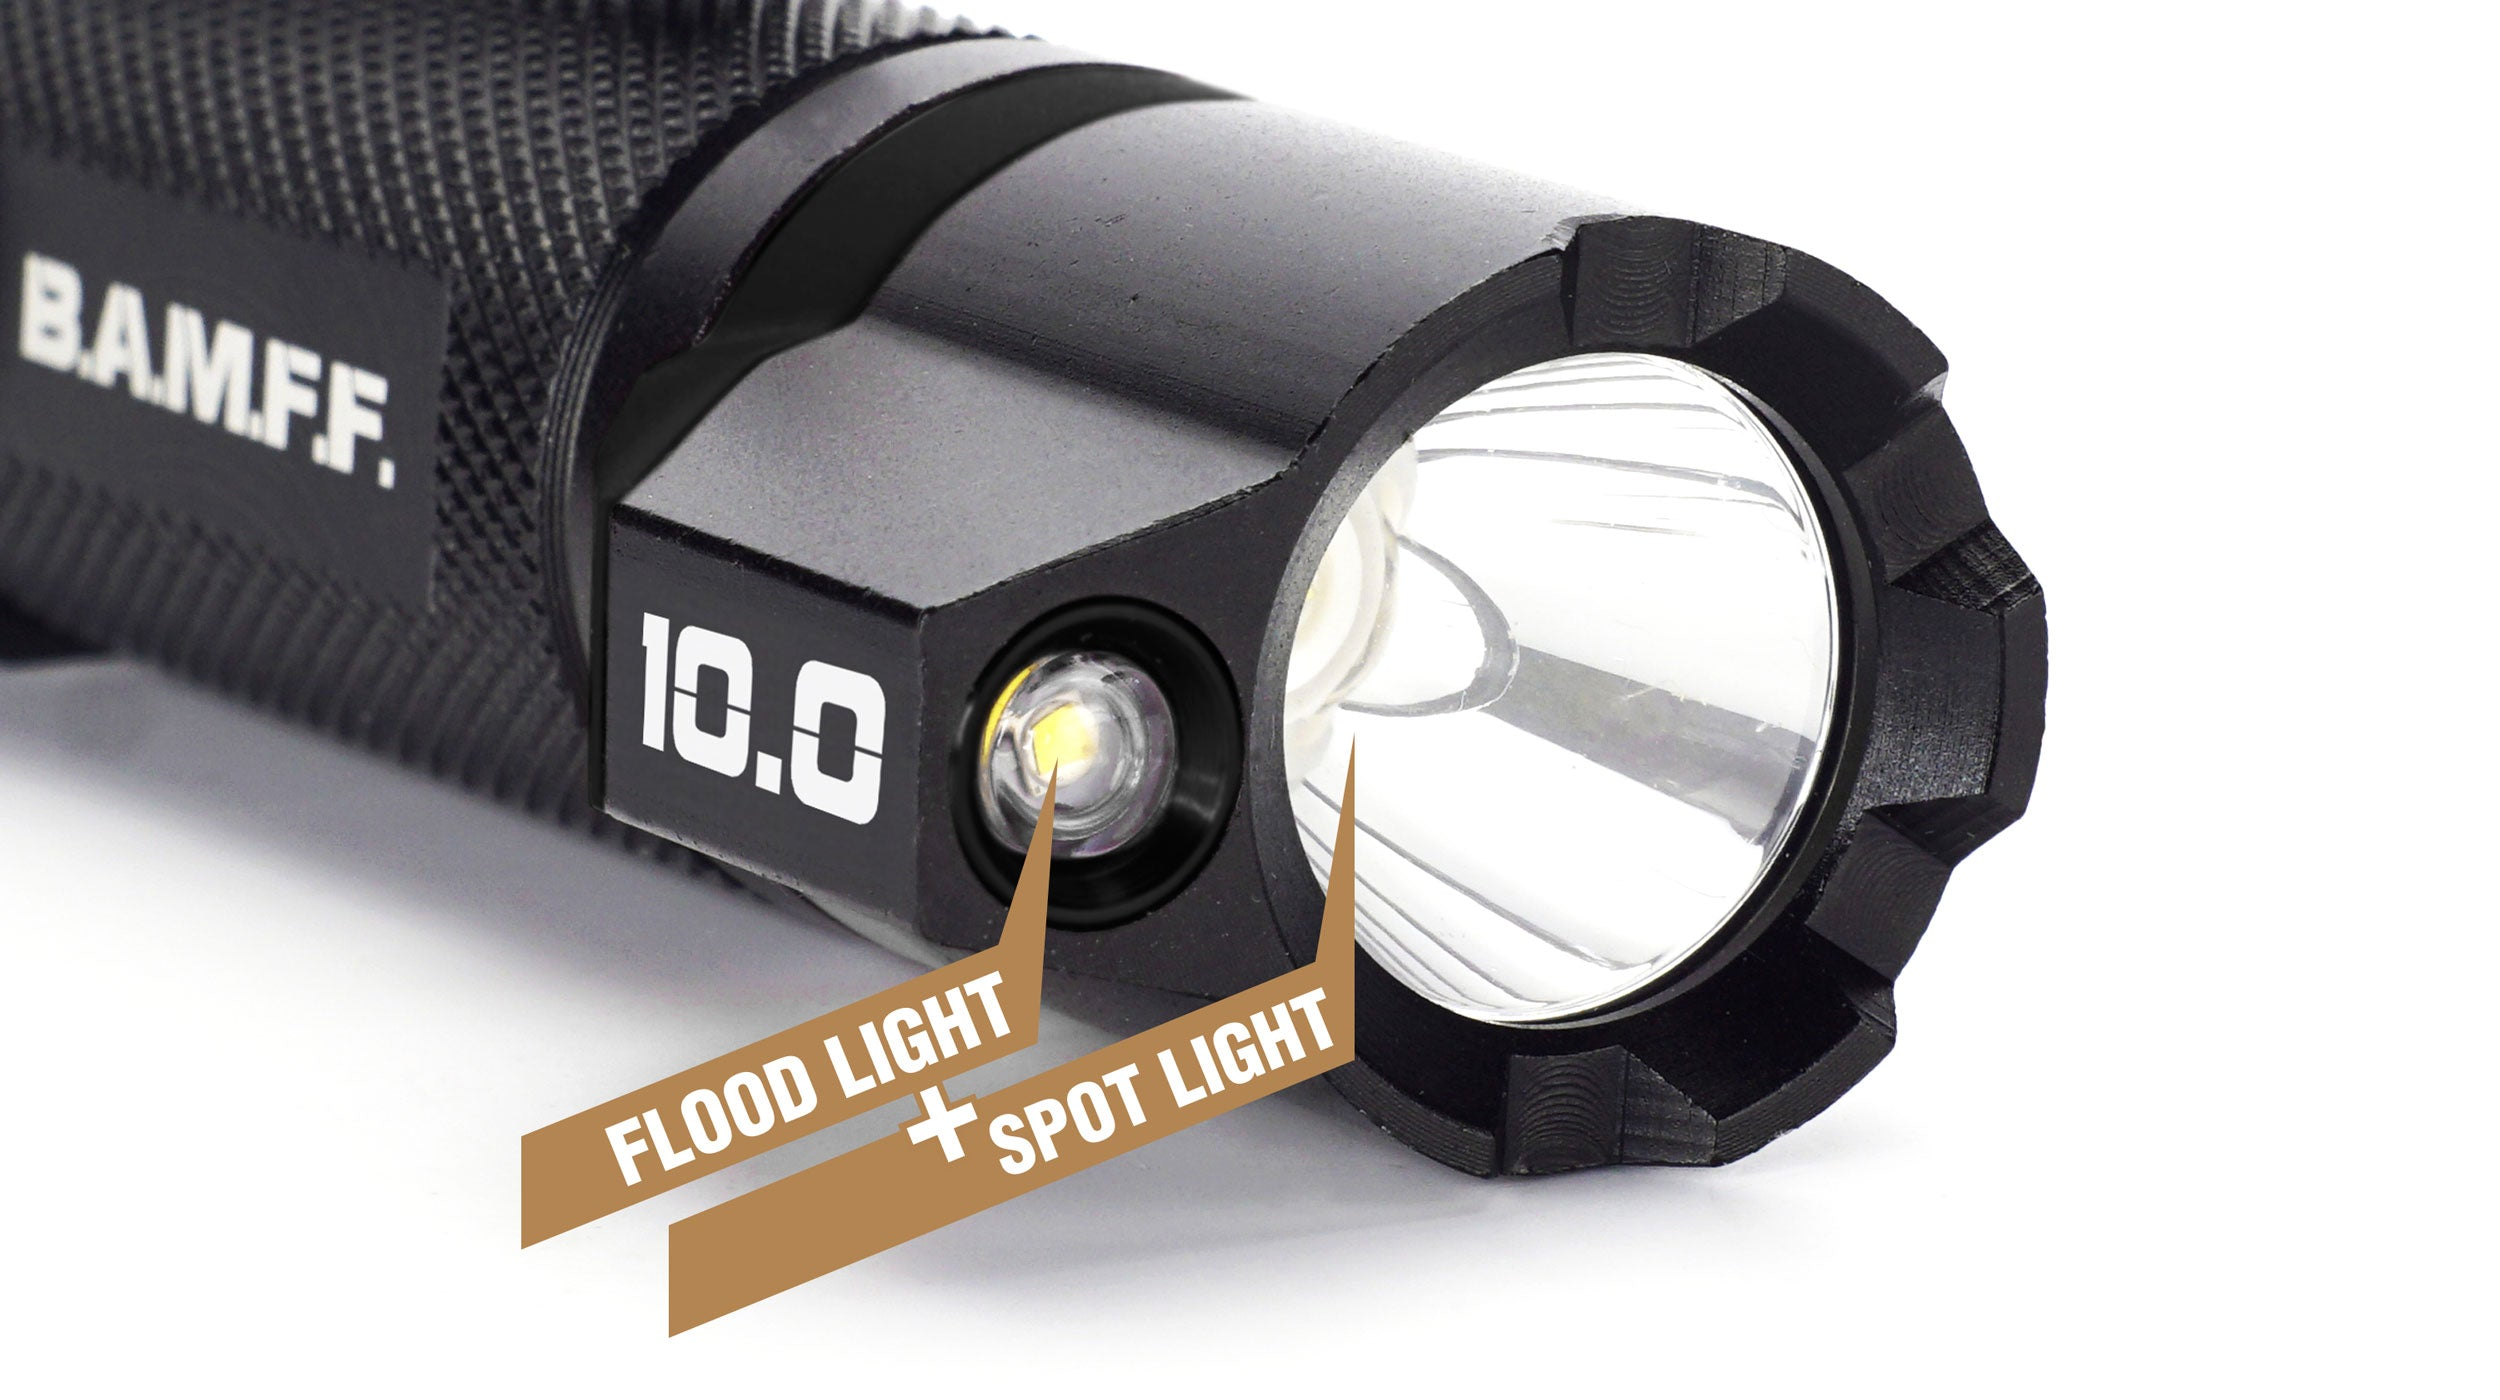 B.A.M.F.F. 10.0 Flashlight Spot Light with Flood Light